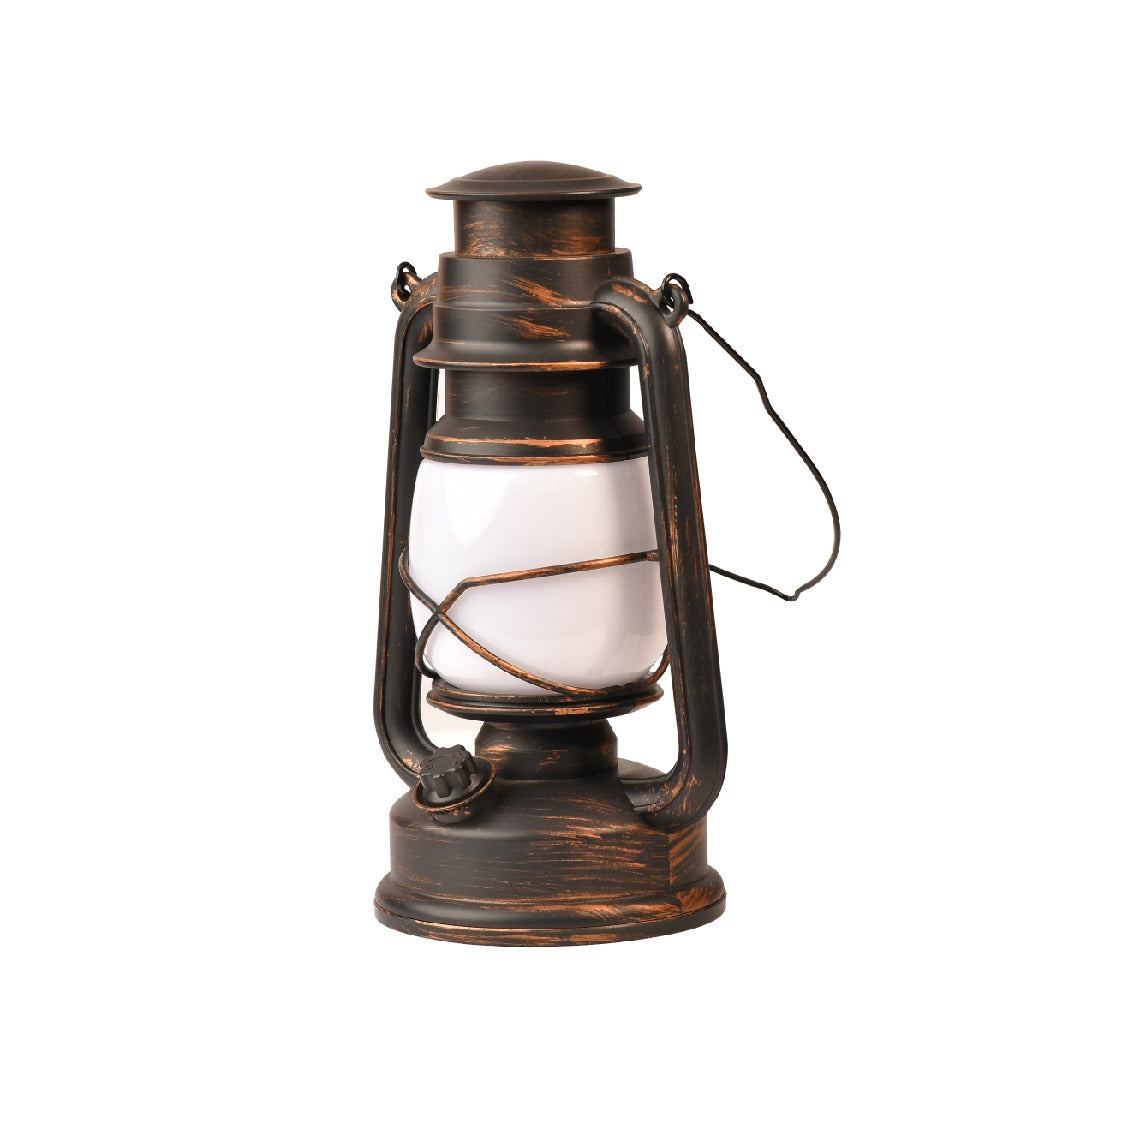 Antique Lantern Lamp